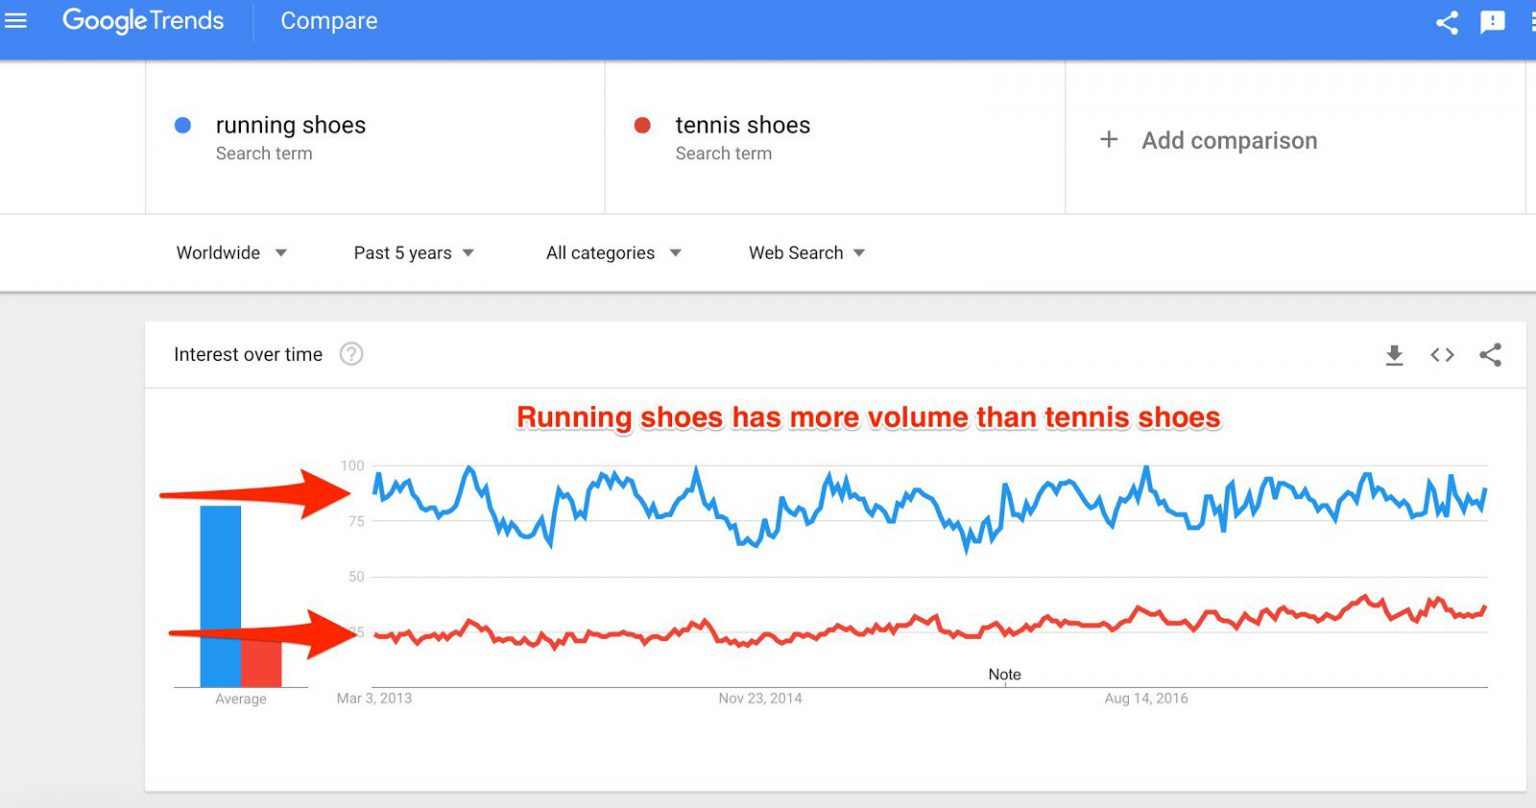 Google Trends is a great free tool for marketers to see popularity and trends of keywords and topics